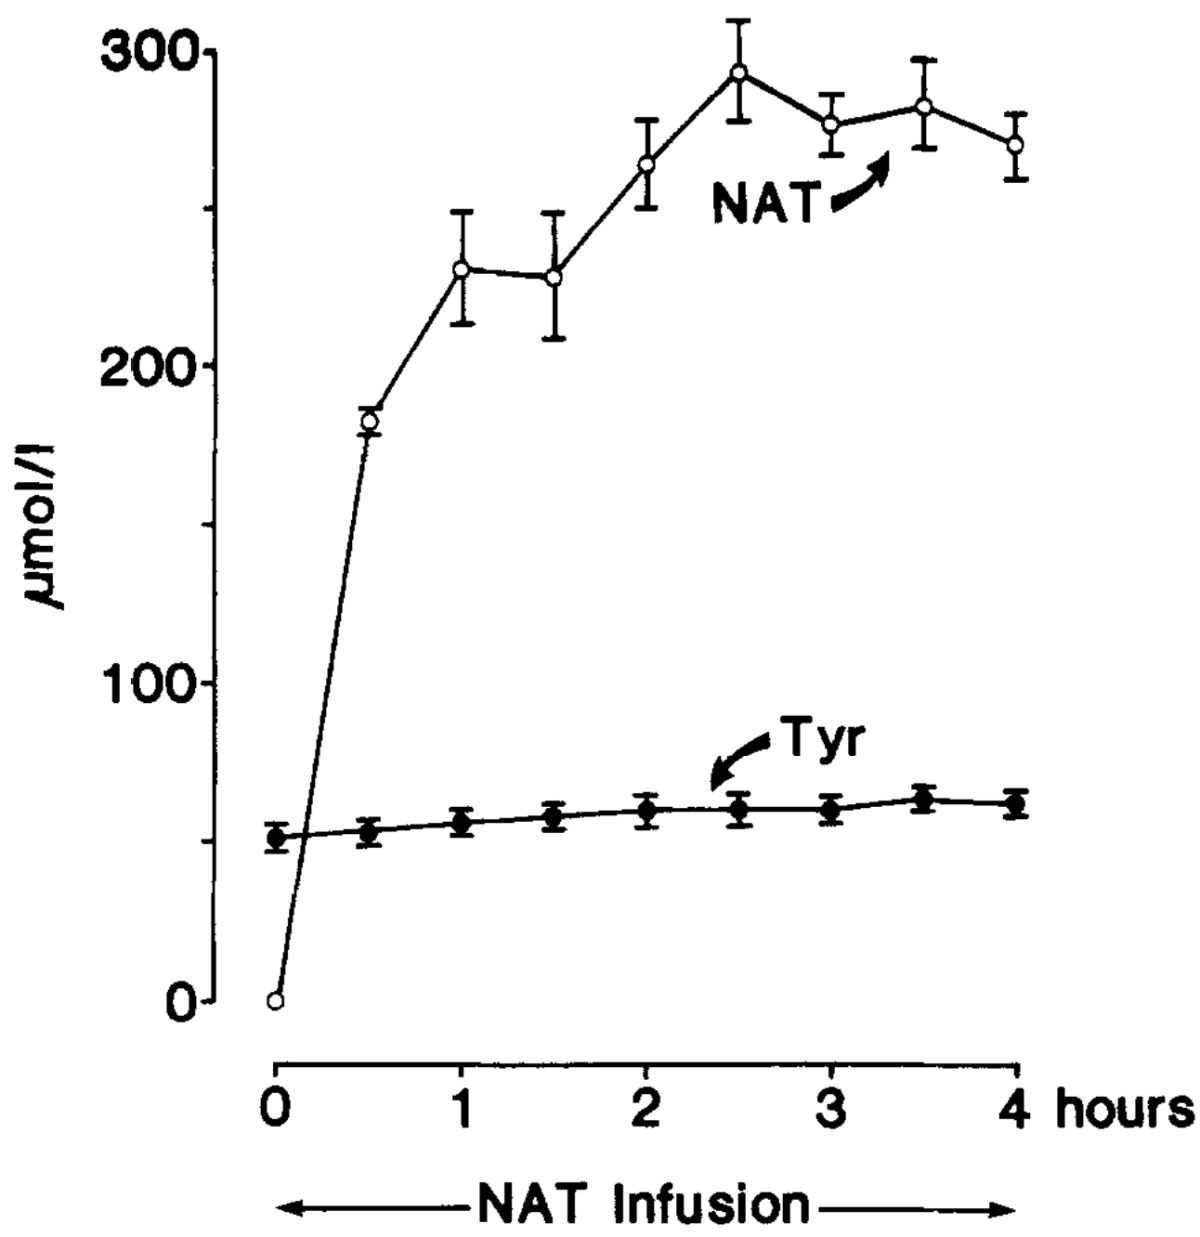 Arterial concentrations of N-Acetyl-L-Tyrosine (NAT) and Tyrosine (Tyr) during intravenous infusion of NAT.